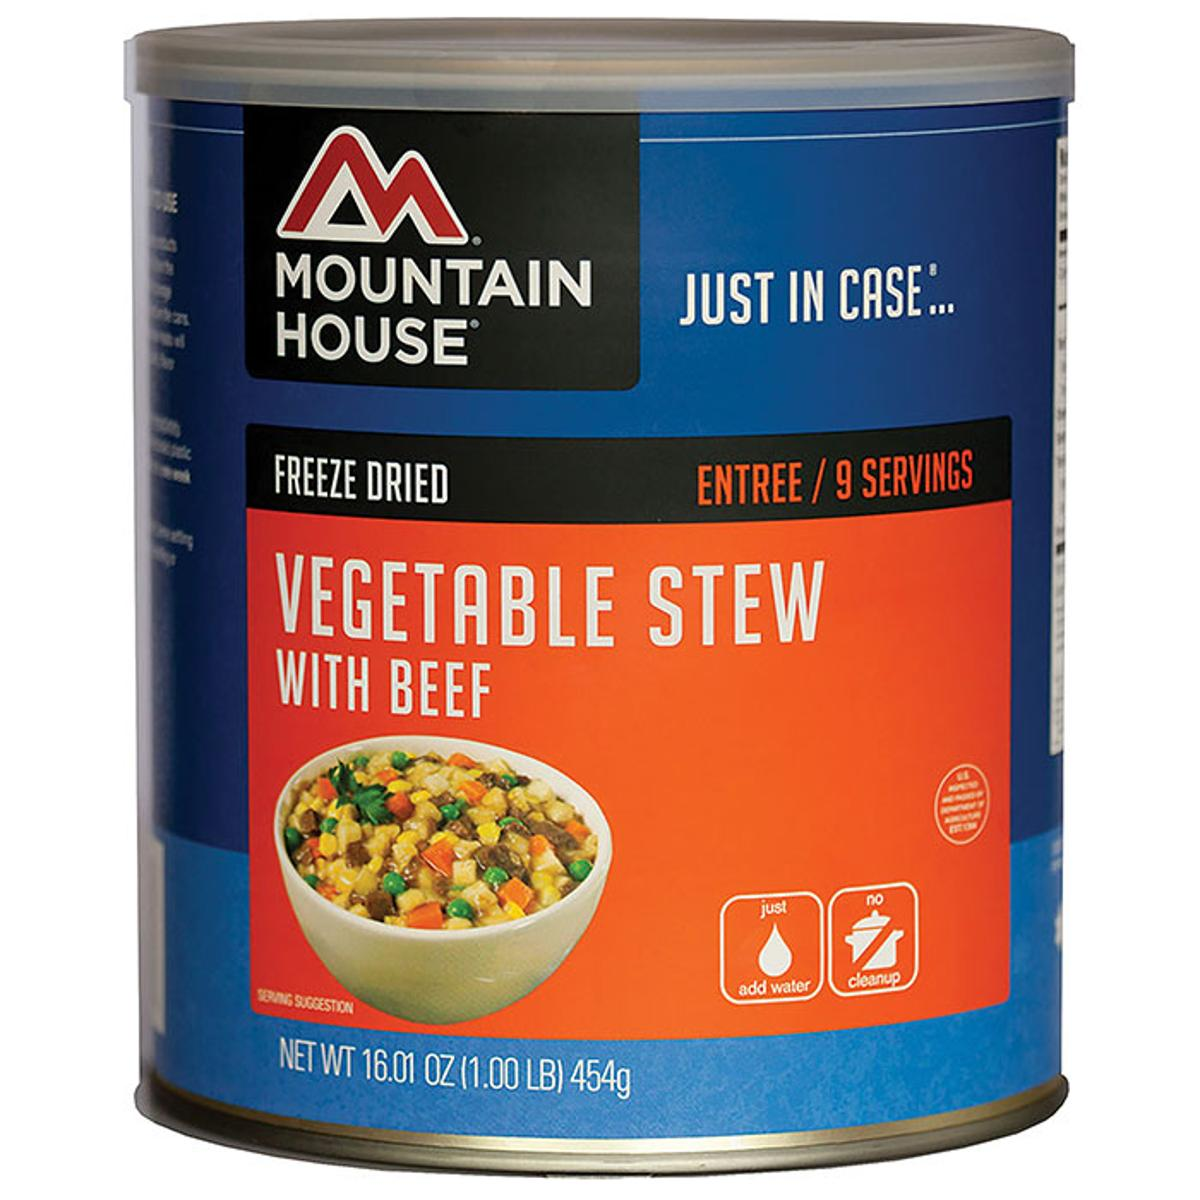 Mountain House 30113 Vegetable Stew W Real Beef Can by Oregon Freeze Dry